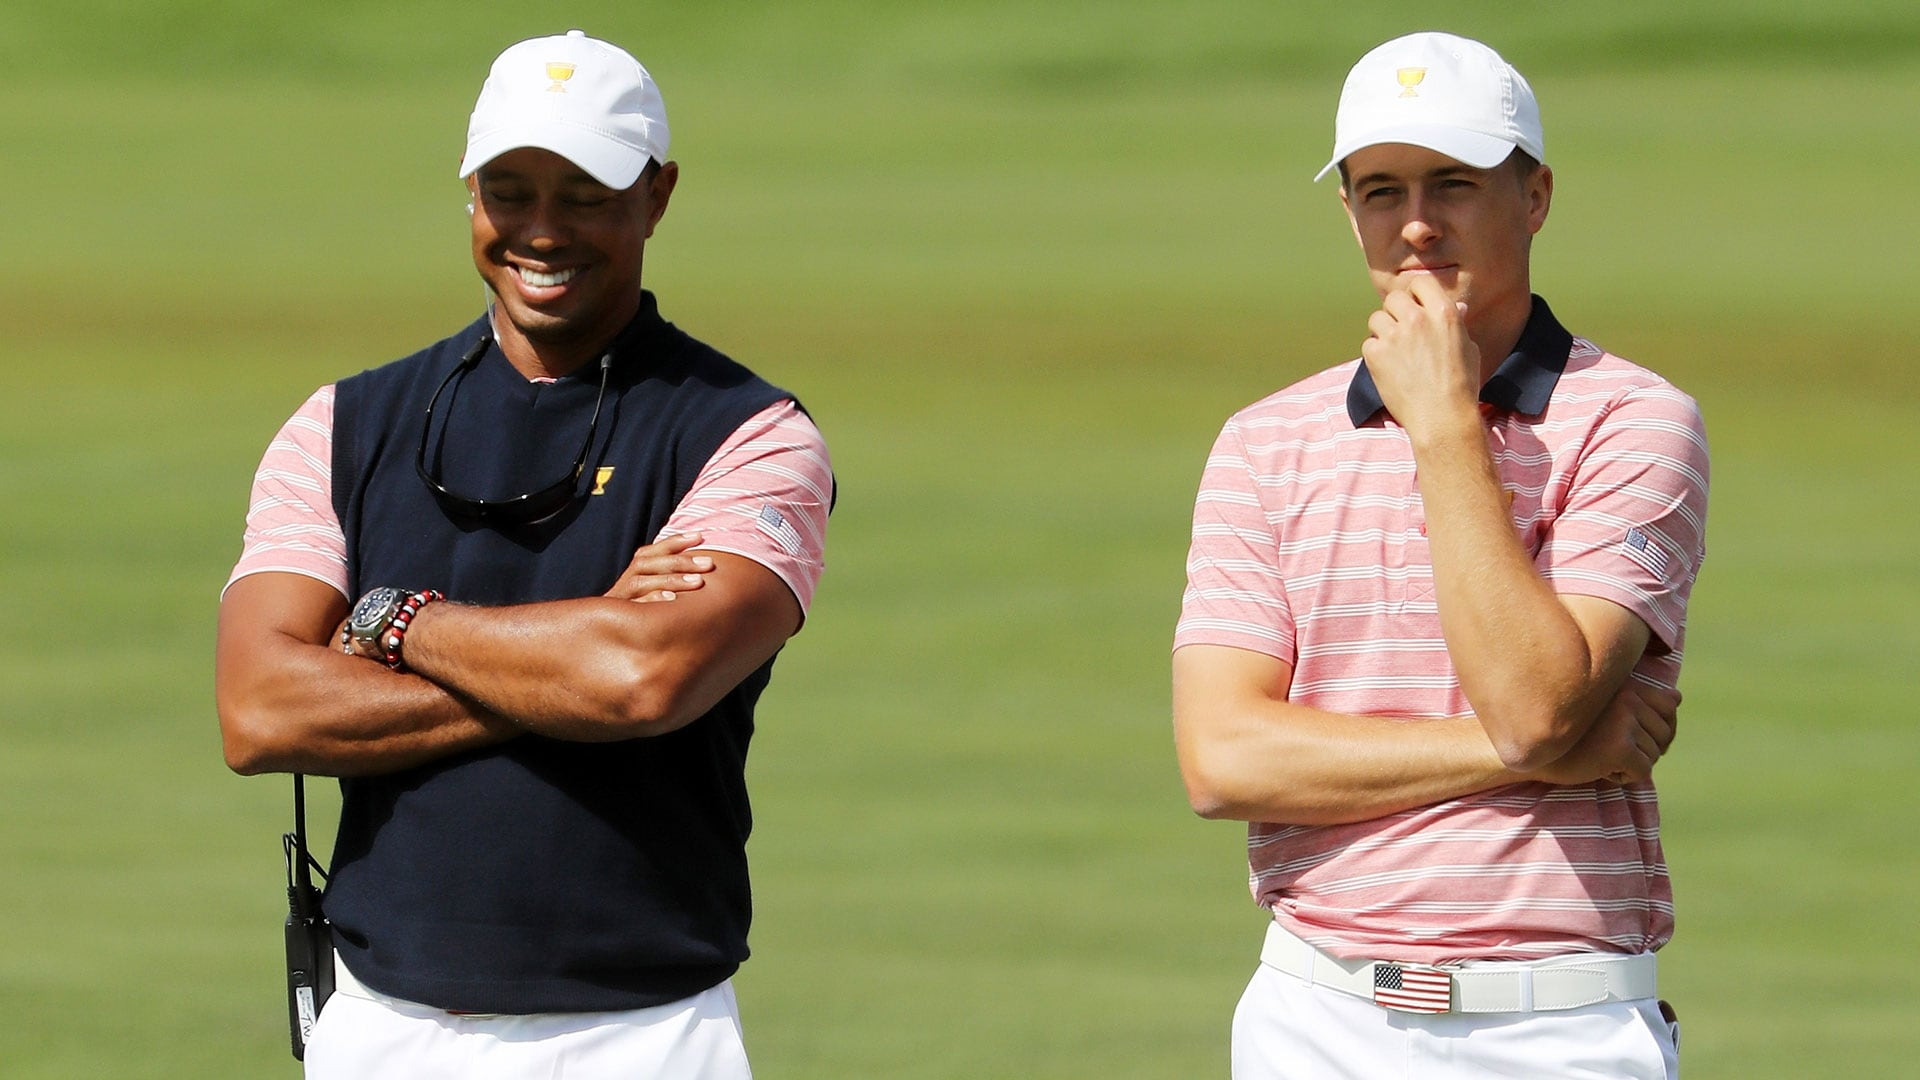 Tiger Woods and Jordan Spieth during the 2017 Presidents Cup.